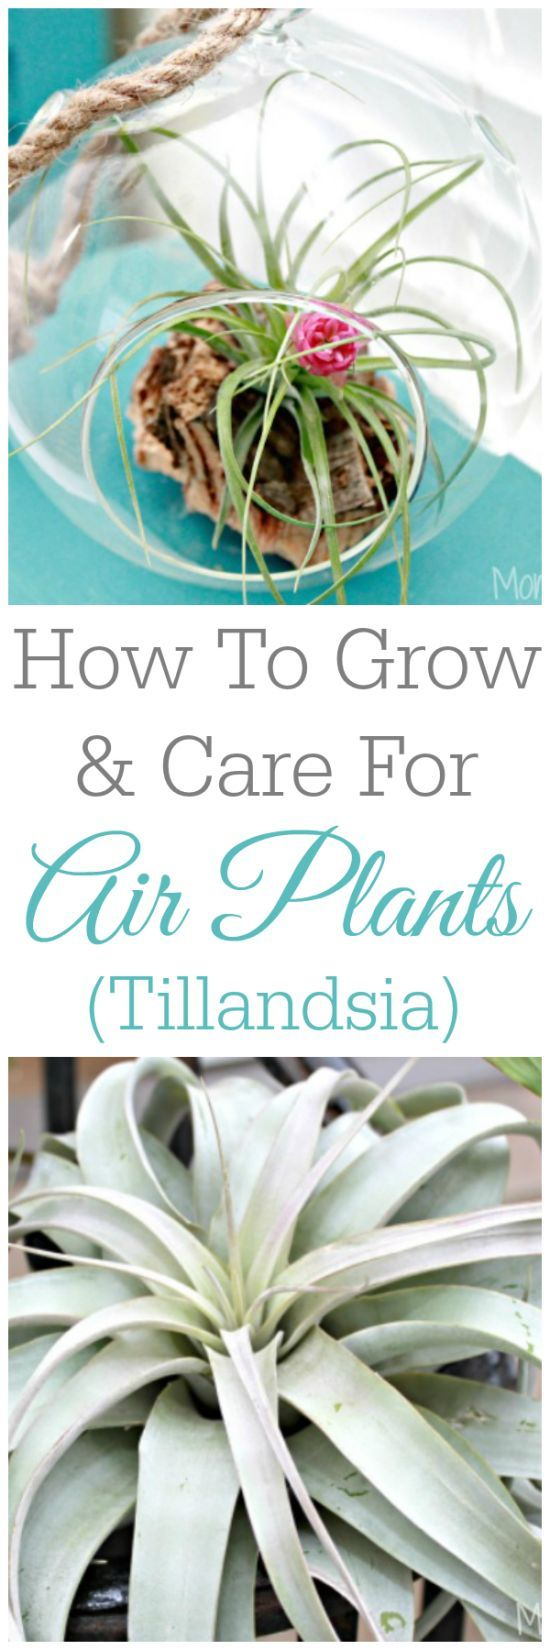 How To Grow And Care For Air Plants - Tillandsia